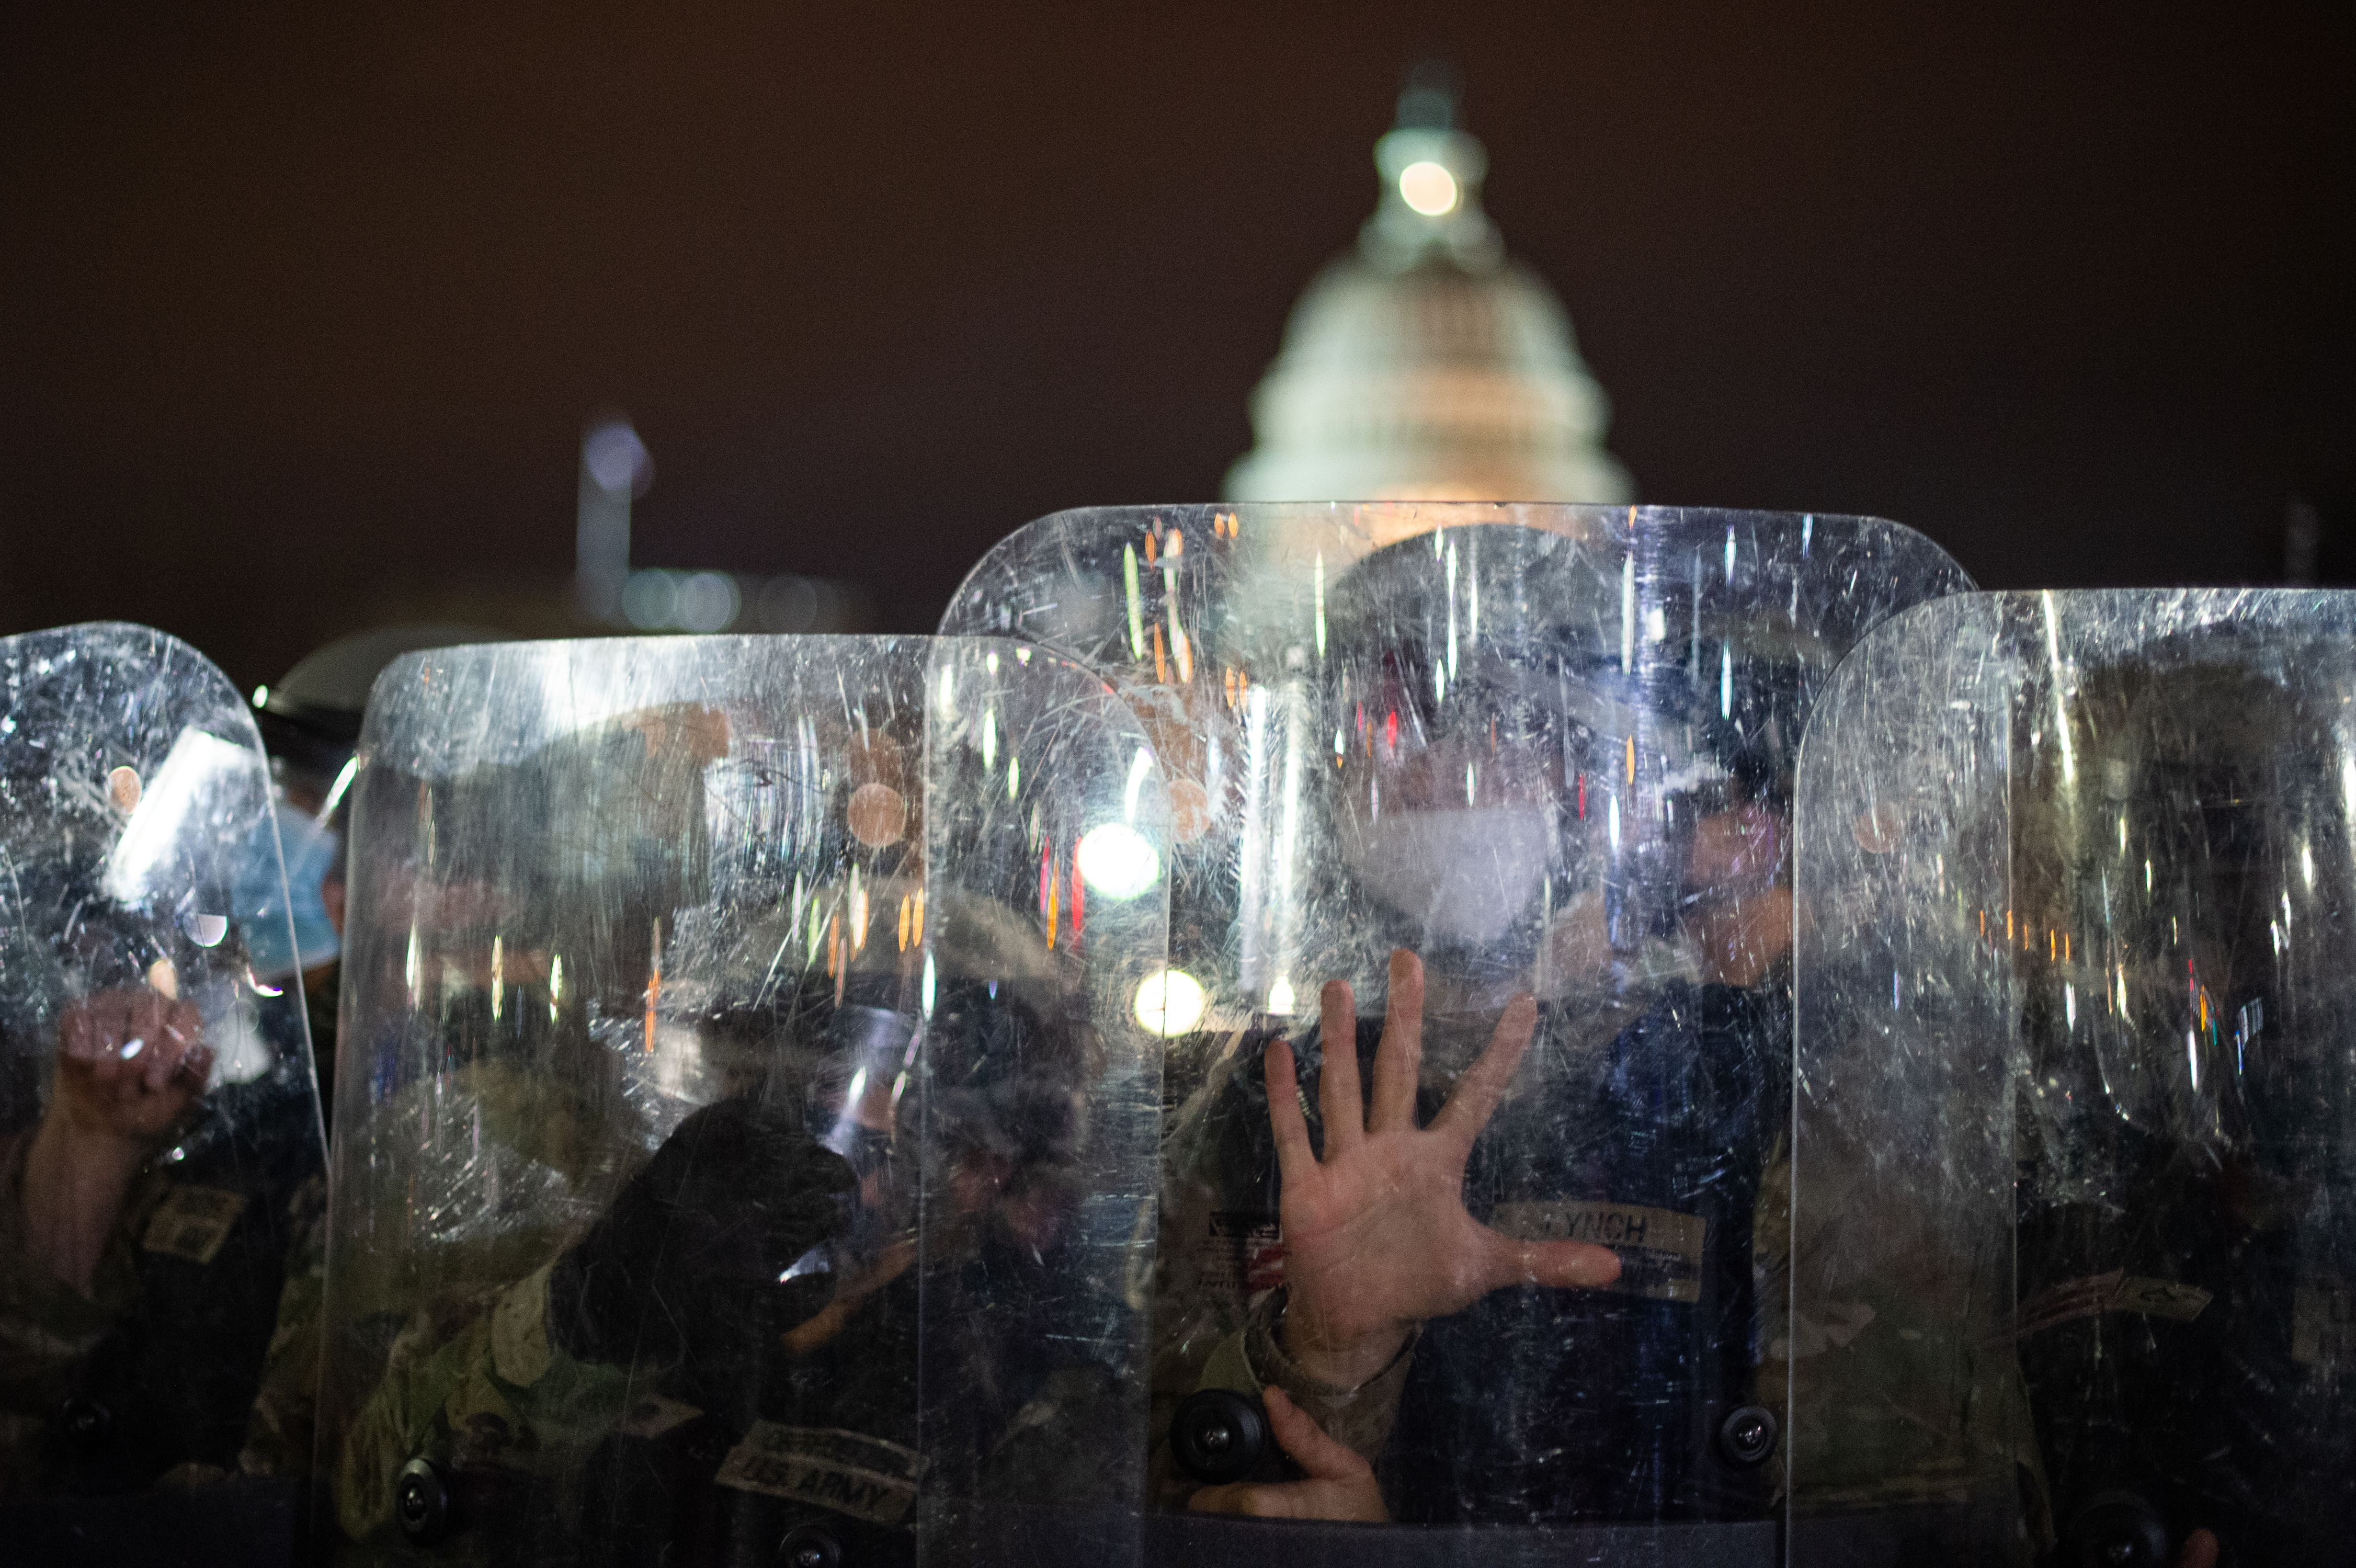 National Guard troops are seen behind shields as they clear a street from protestors outside the Capitol building on Jan. 6, 2021 in Washington, D.C.